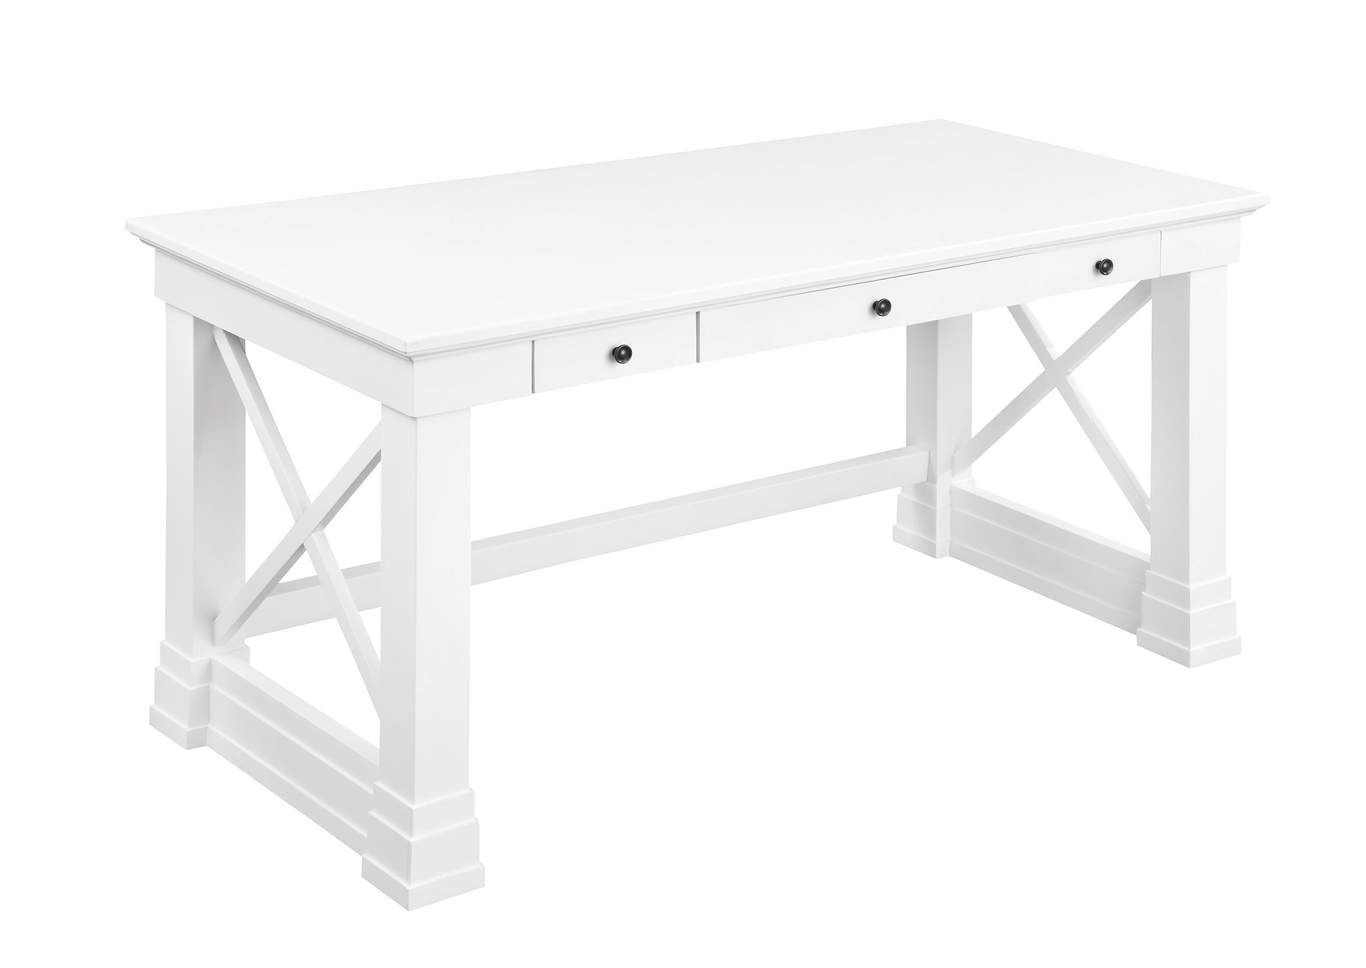 With A Clean White Finish This Writing Desk By Is Sure To Stand Out In Any Room The Desk Includes Three Dr In 2020 Antique White Writing Desk White Writing Desk Desk